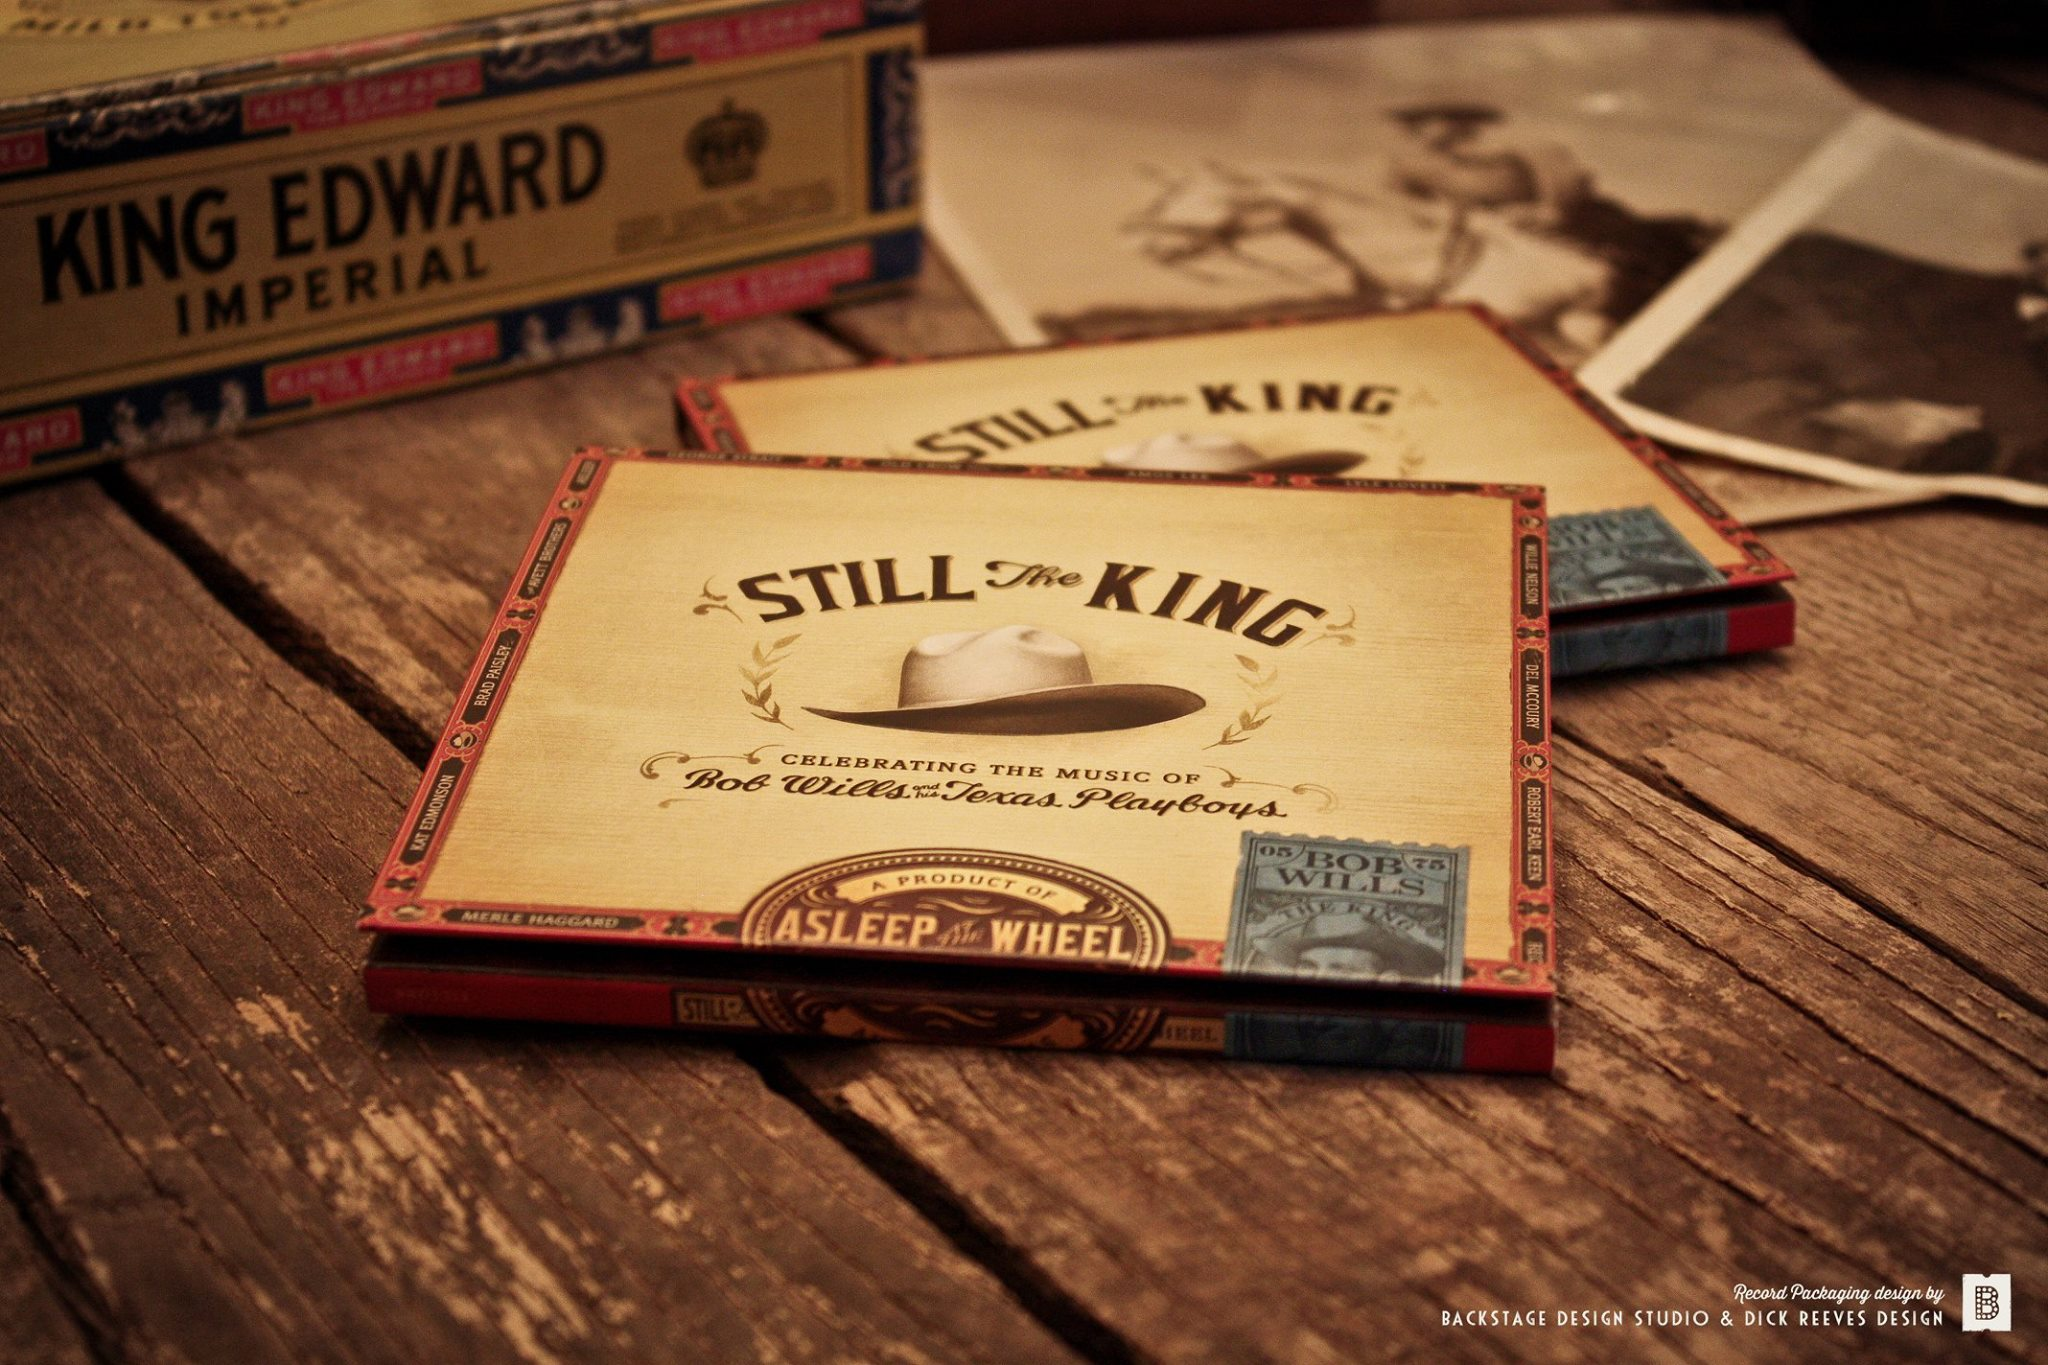 Still The King Cover Art - 2016 Grammy Nominee for Best Recording Package: Shauna Dodds, Sarah Dodds & Dick Reeves